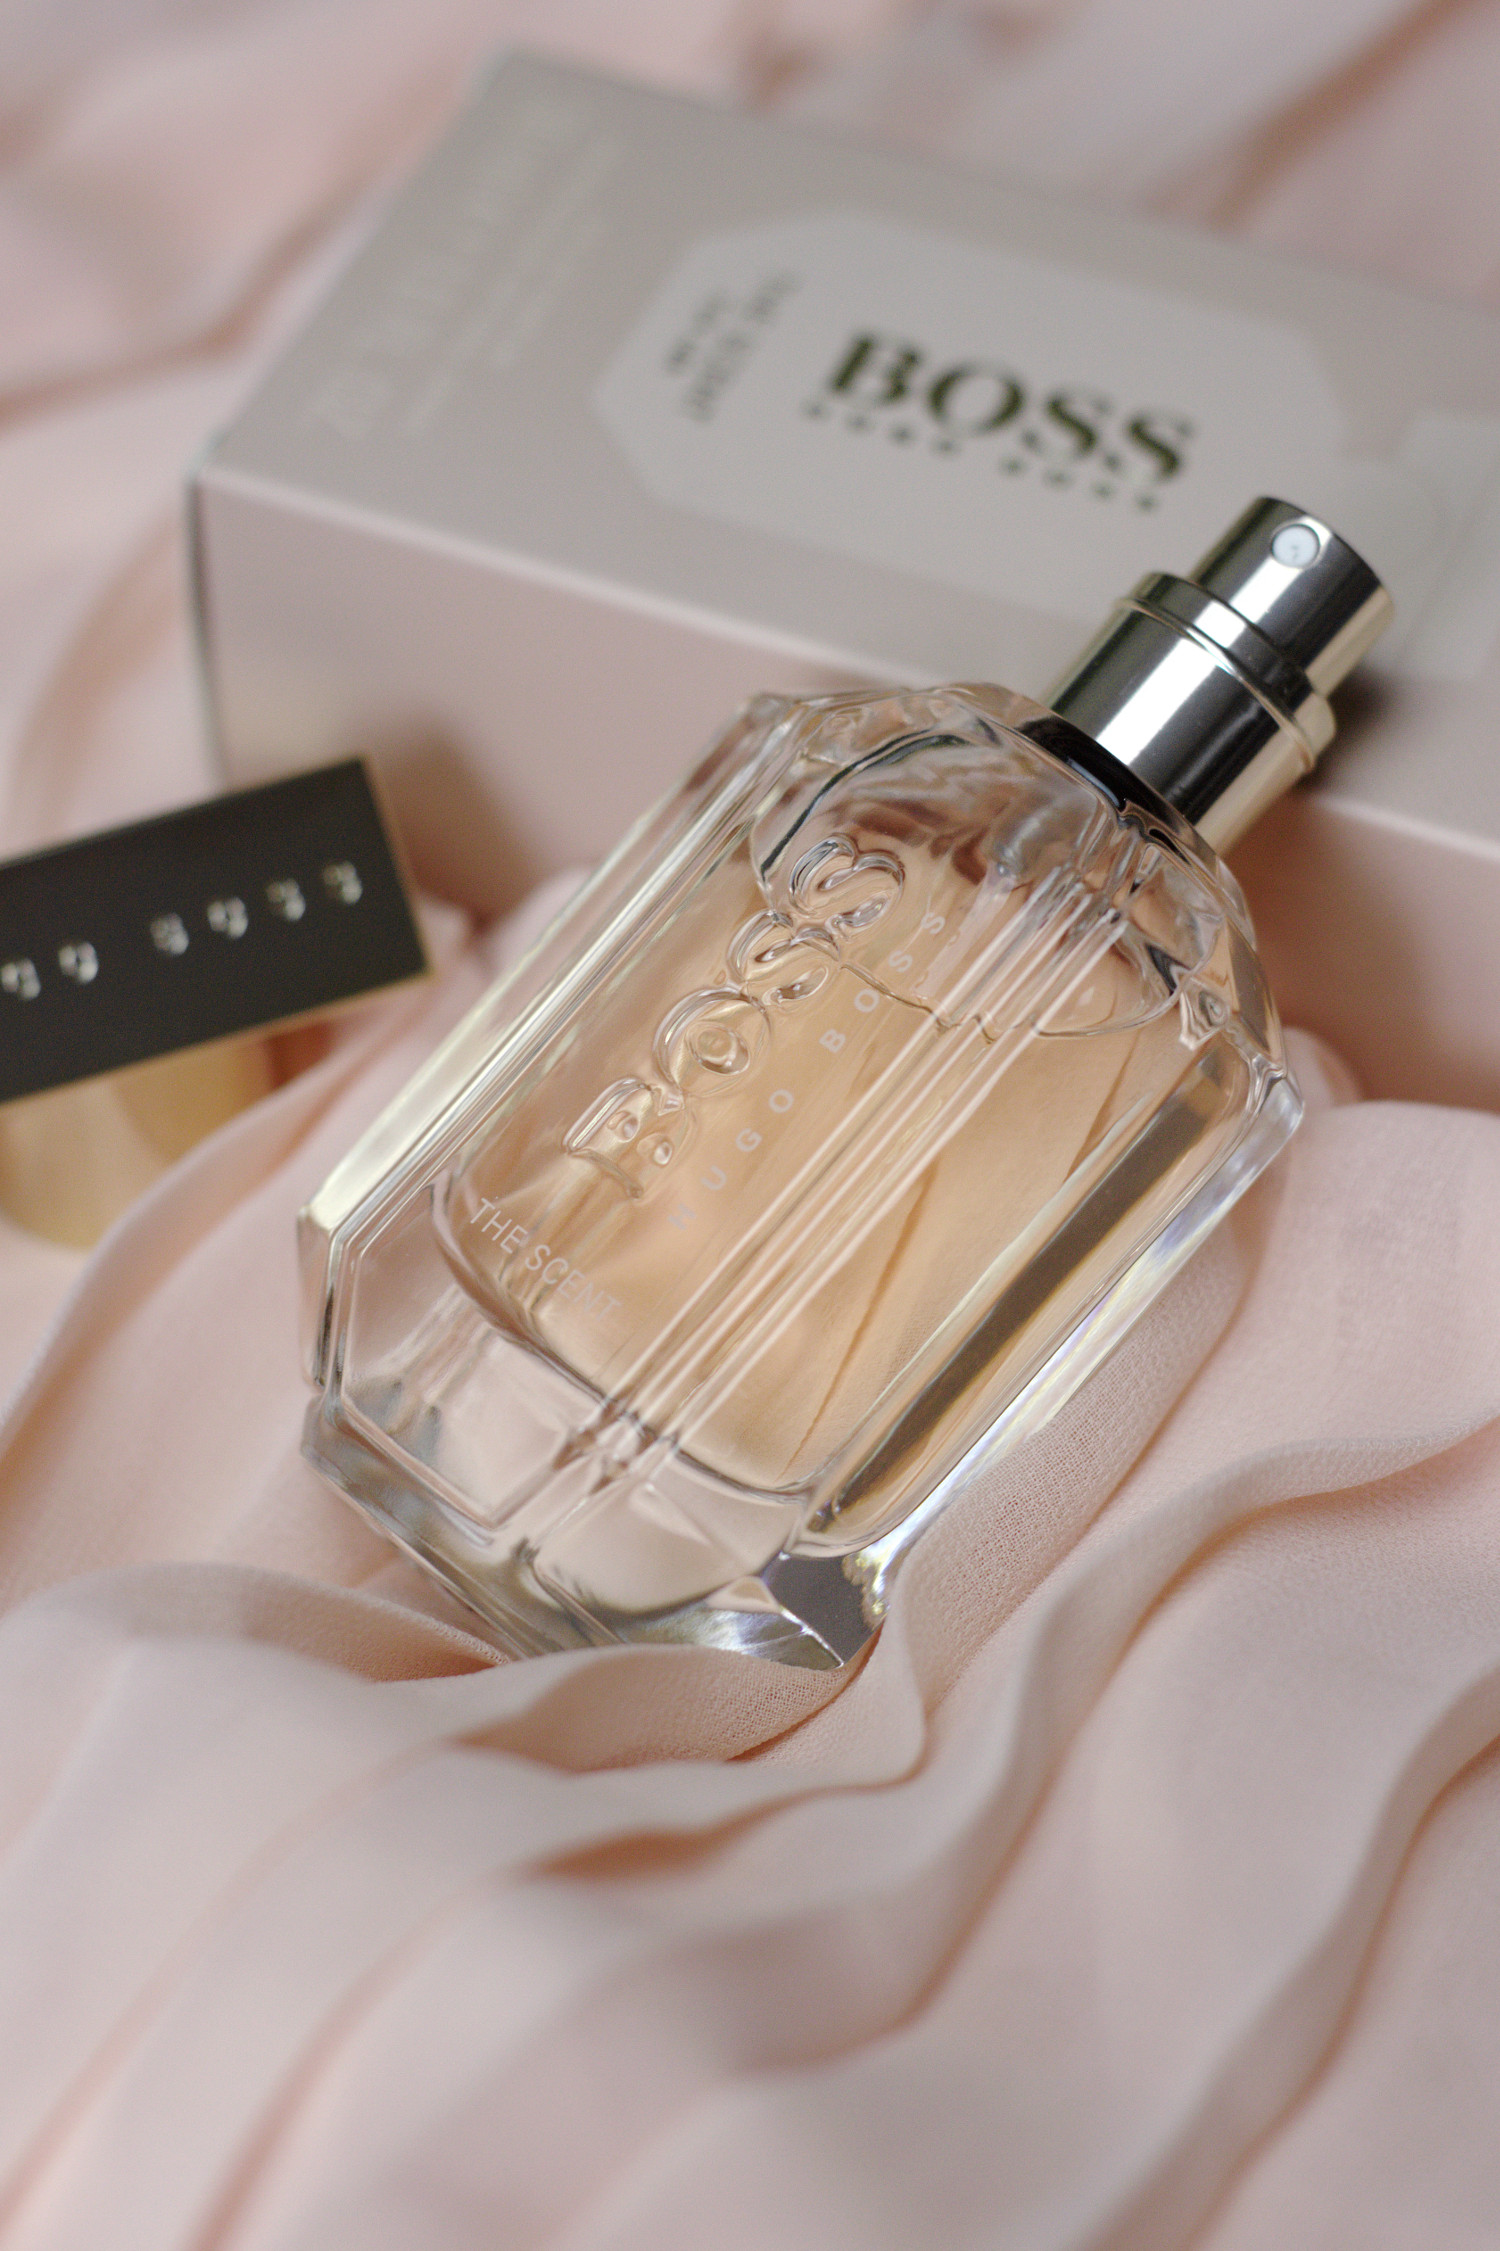 Boss The Scent For Her, Hugo Boss, Parfüm, Duft, Test, Review, Erfahrung, bezauberndenana.de